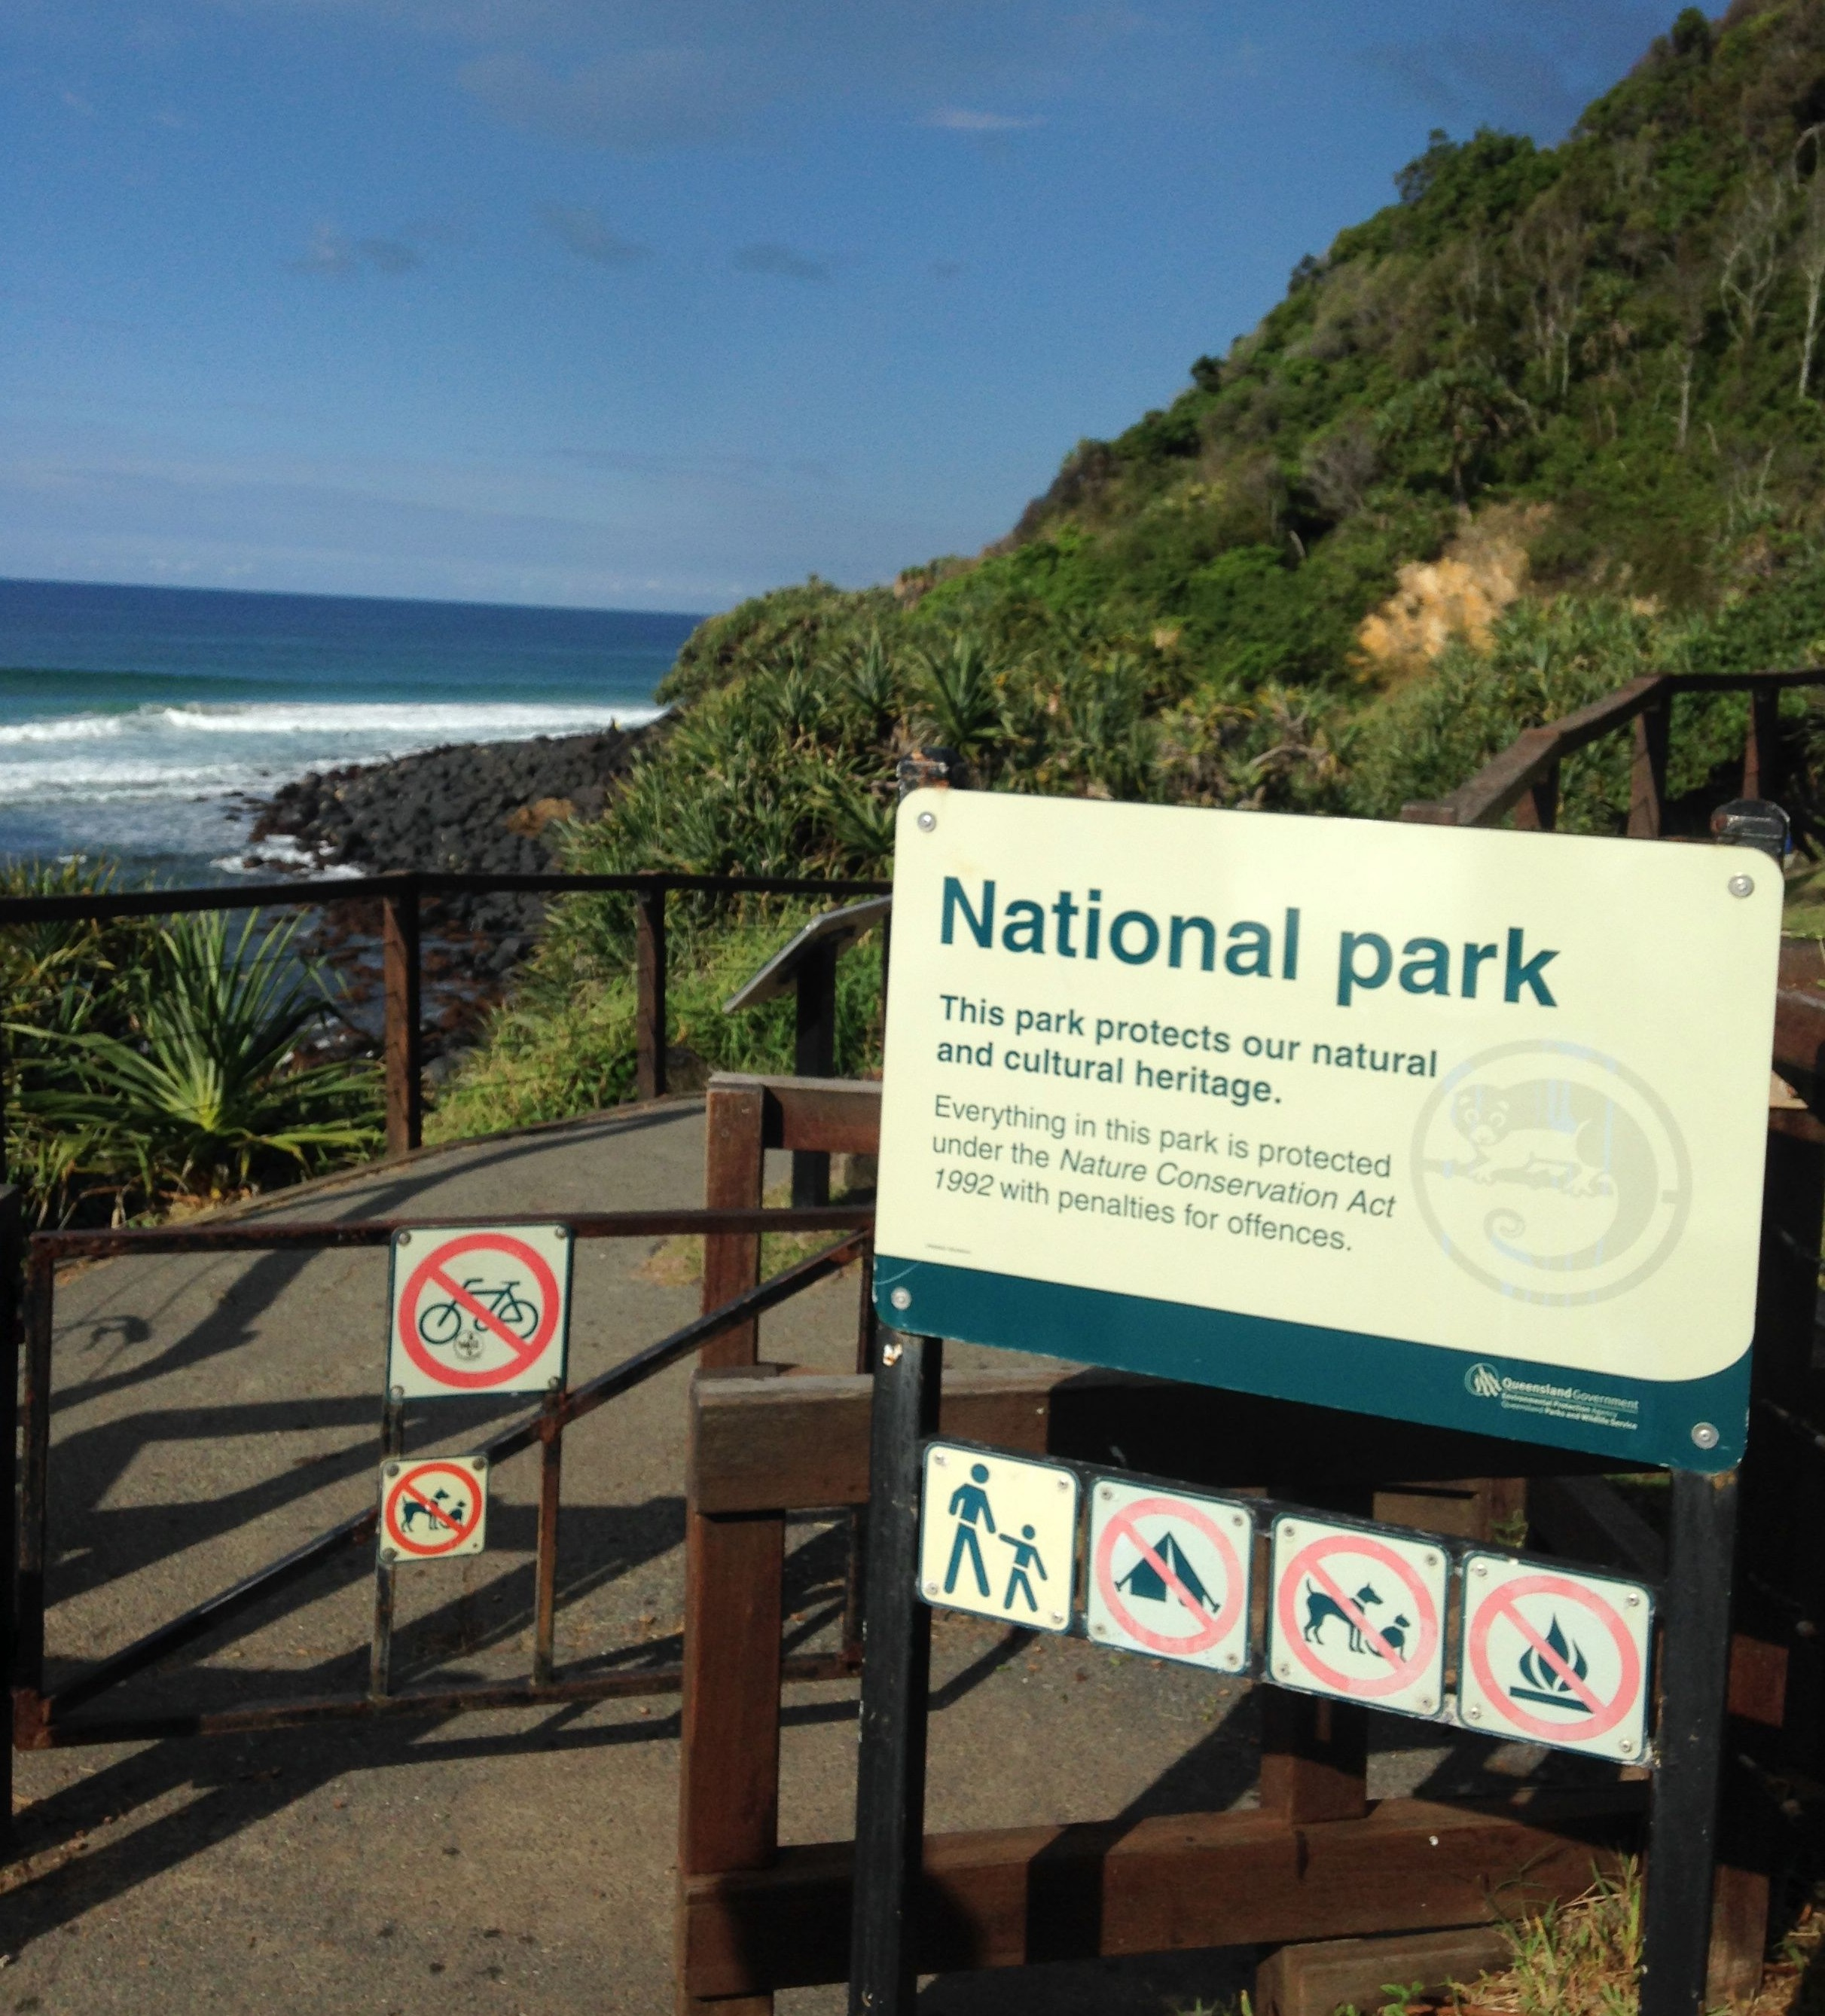 Burleigh Heads National Park © GreenSocks